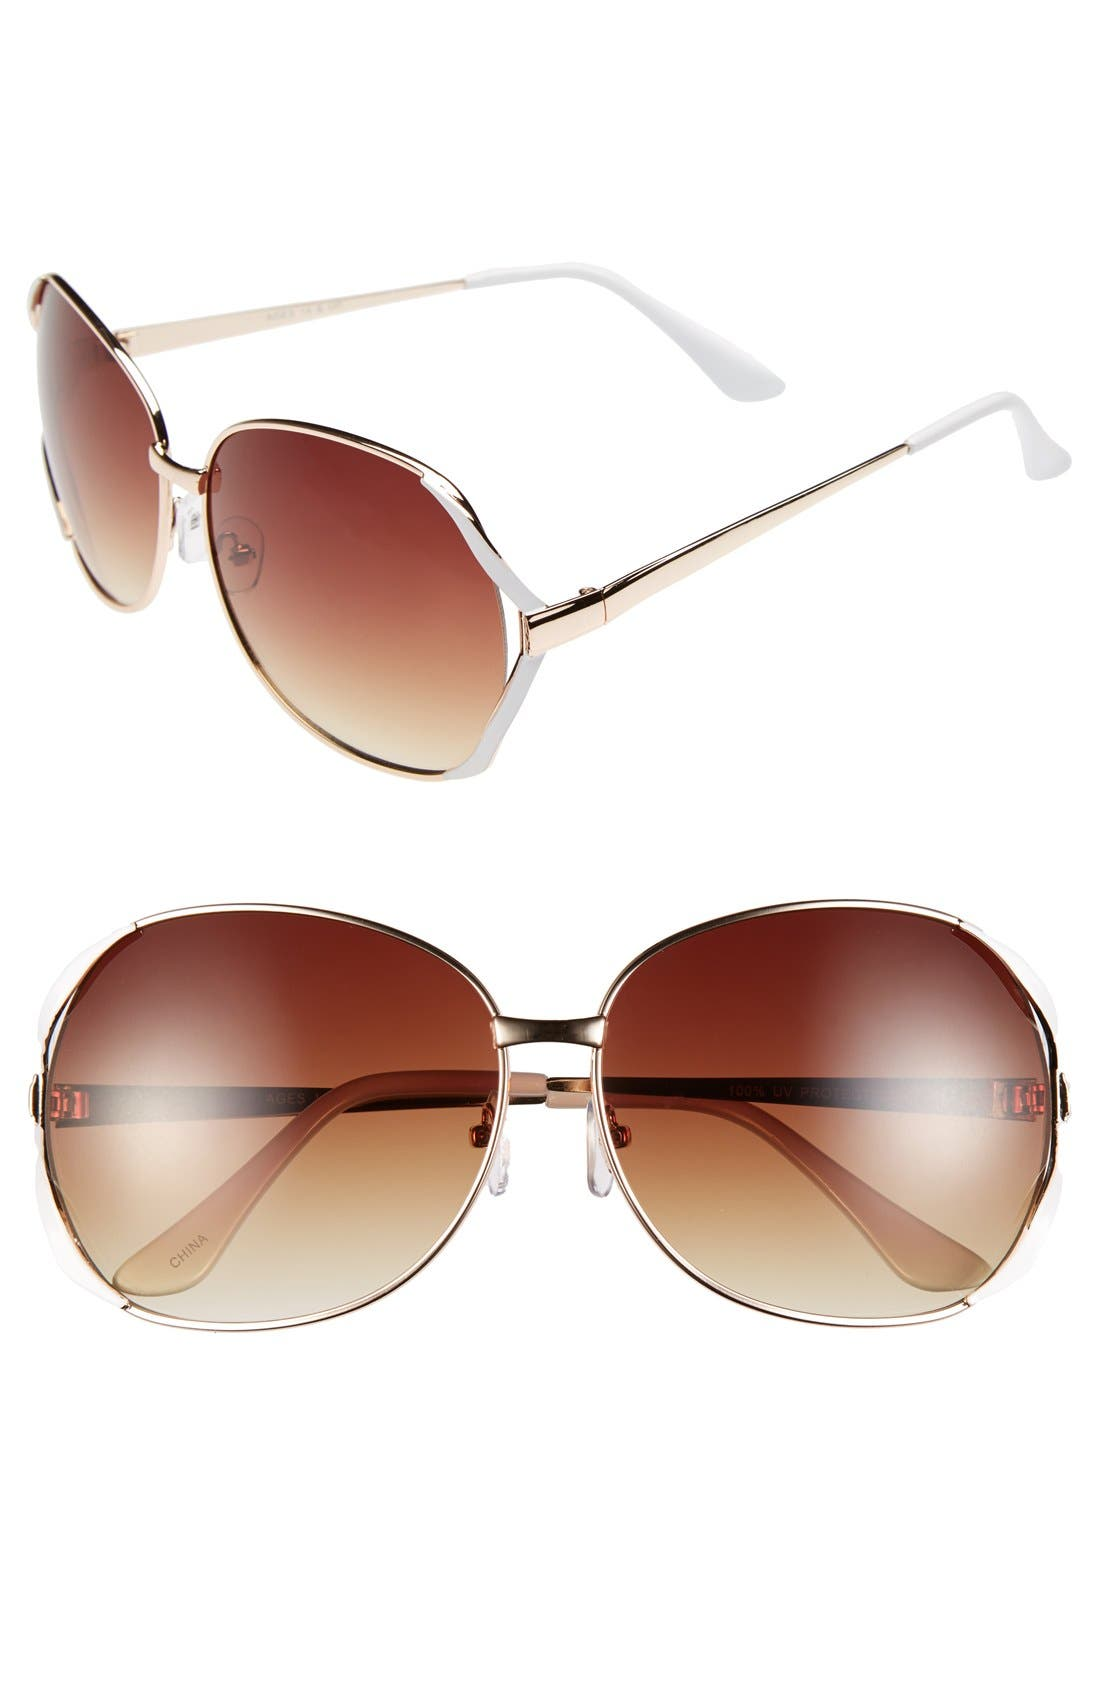 Alternate Image 1 Selected - Fantas Eyes 'San Juan' Aviator Sunglasses (Juniors)